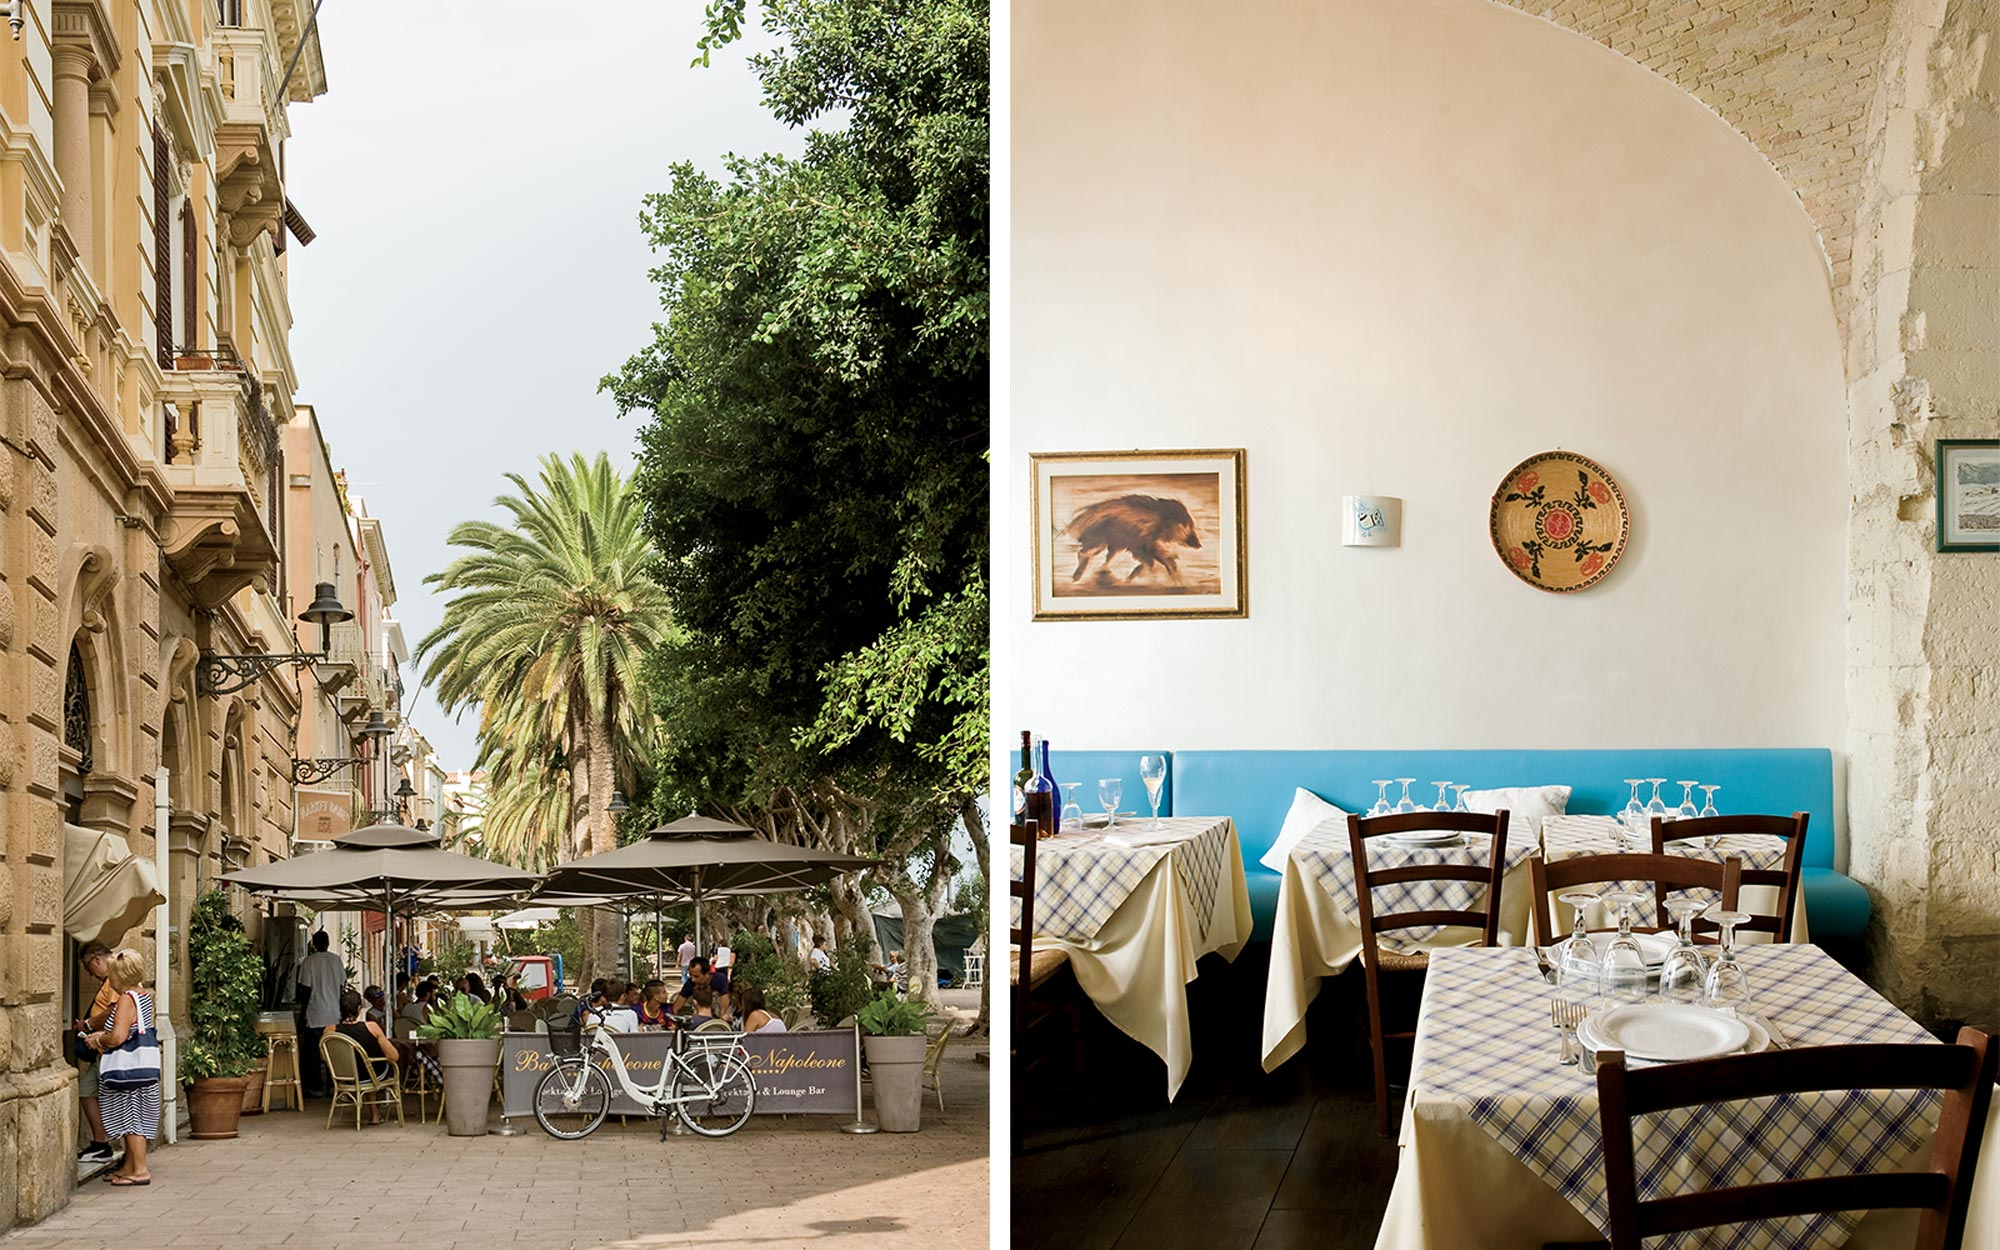 Sardinia Dining and Towns